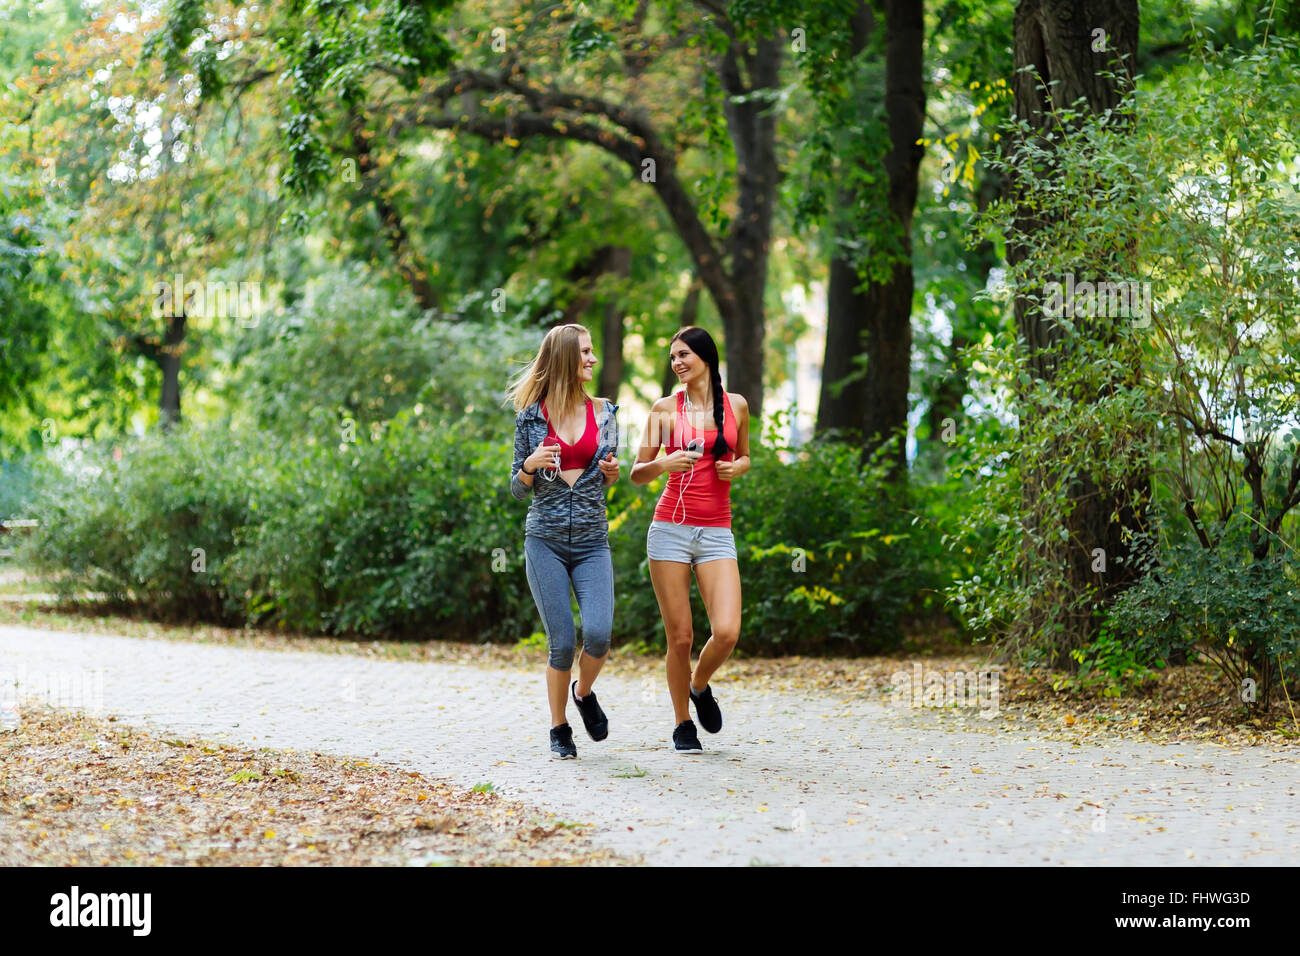 Two beautiful women jogging in park and keeping their bodies in shape - Stock Image